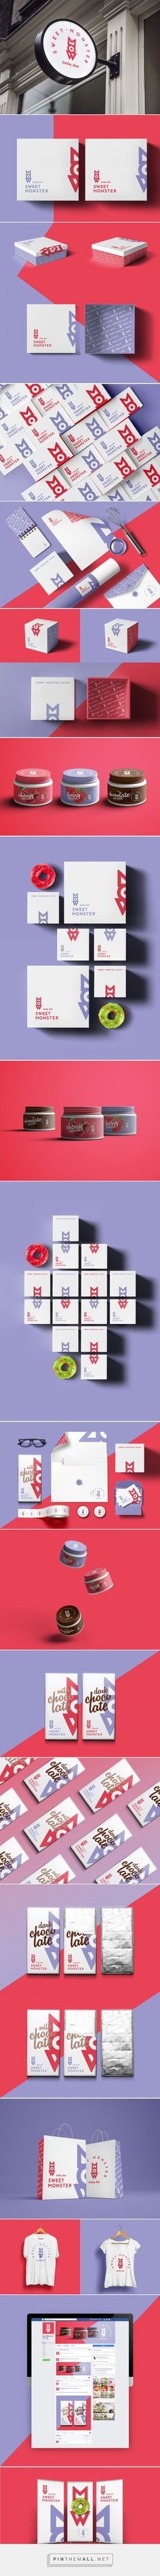 Sweet Monster   Pastry Shop (Concept) - Packaging of the World - Creative Package Design Gallery - http://www.packagingoftheworld.com/2016/12/sweet-monster-pastry-shop.html